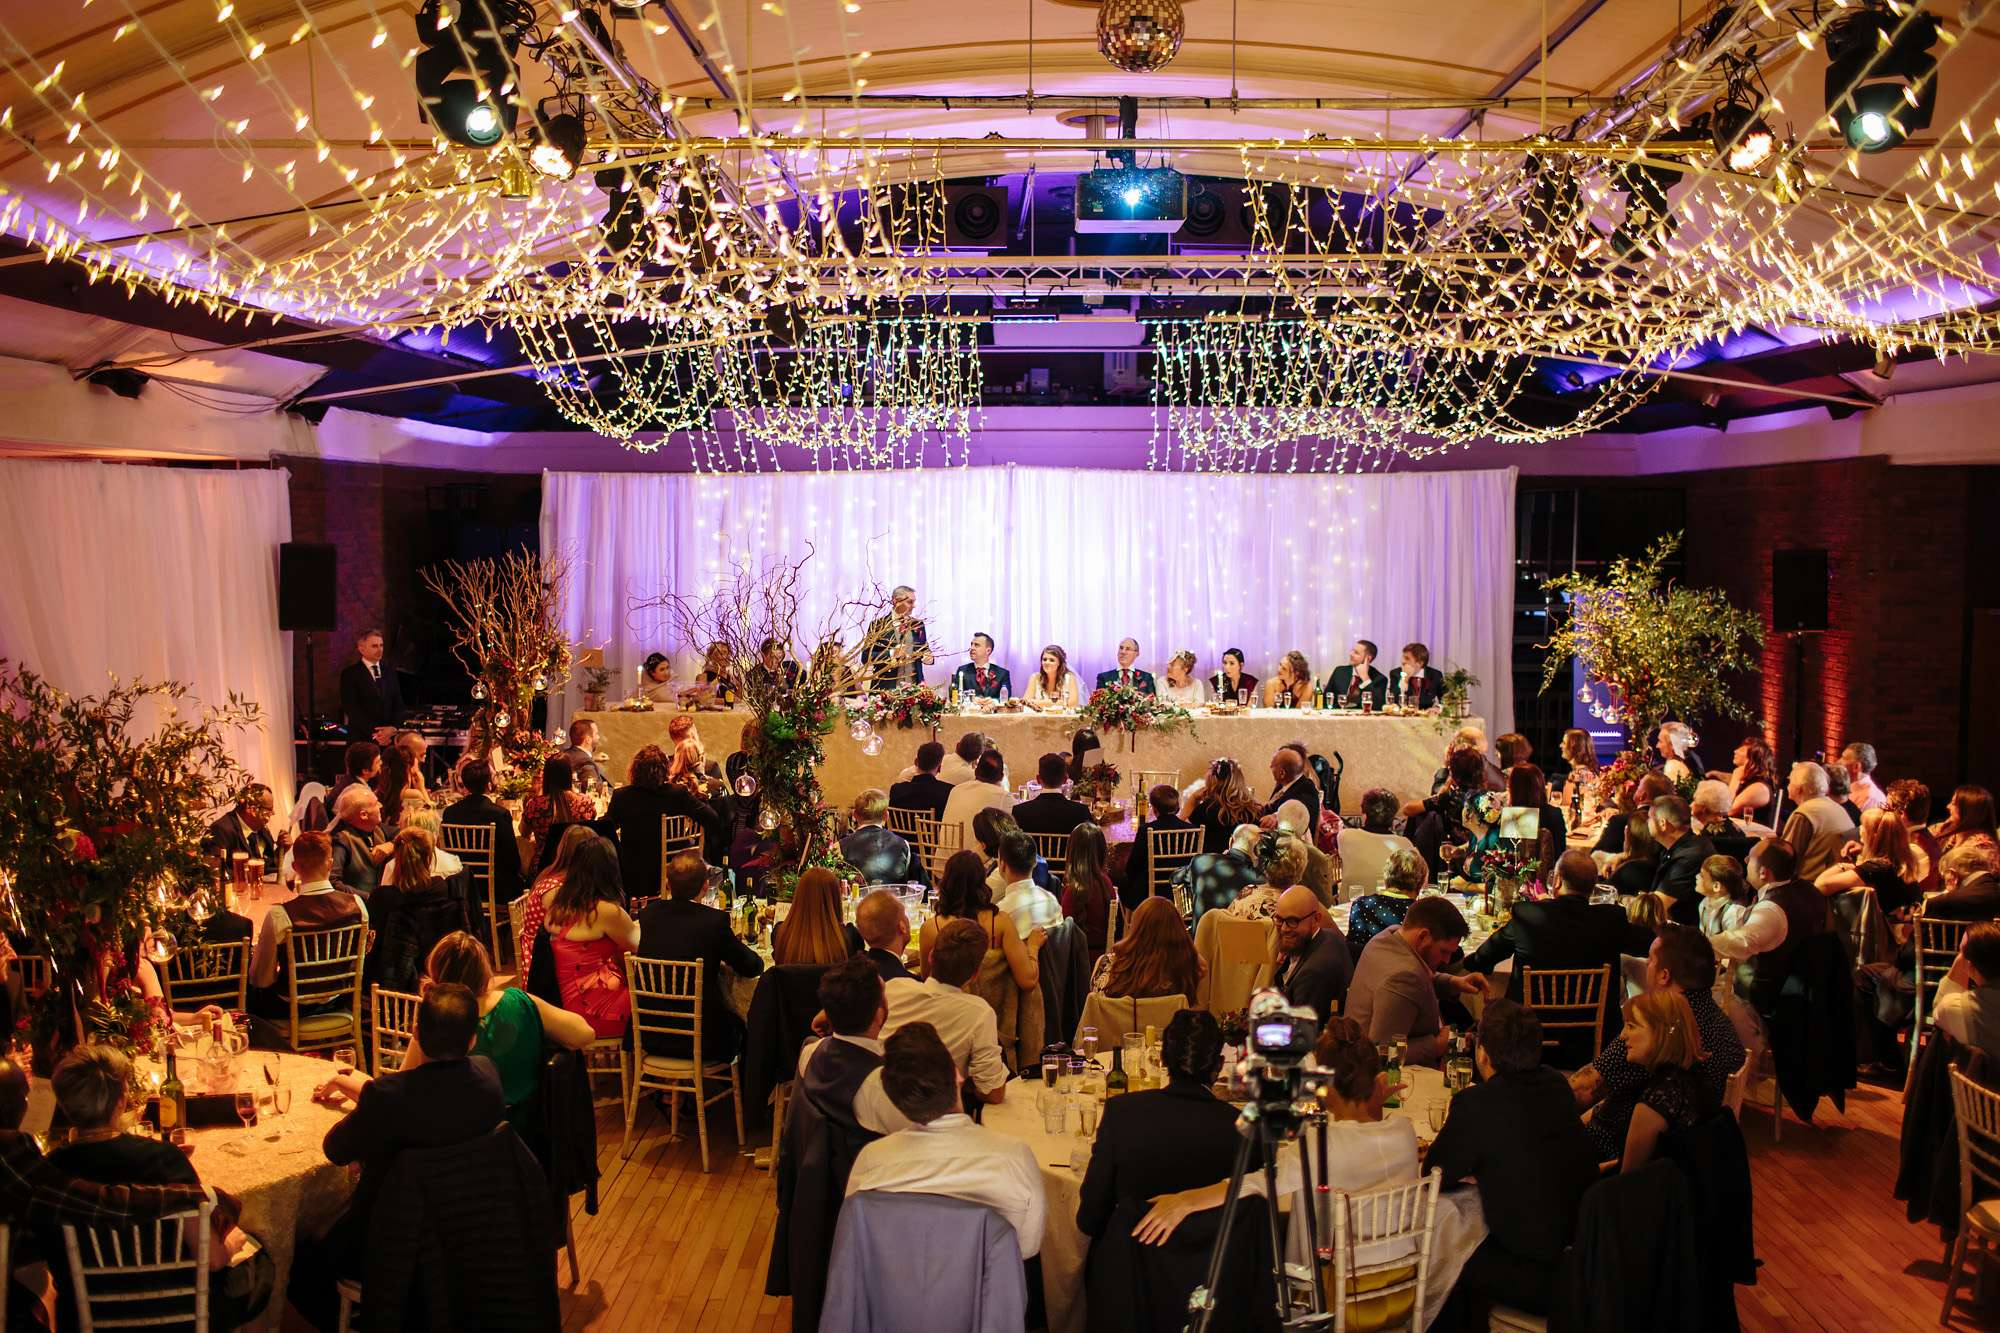 Speeches at a wedding in Blackpool